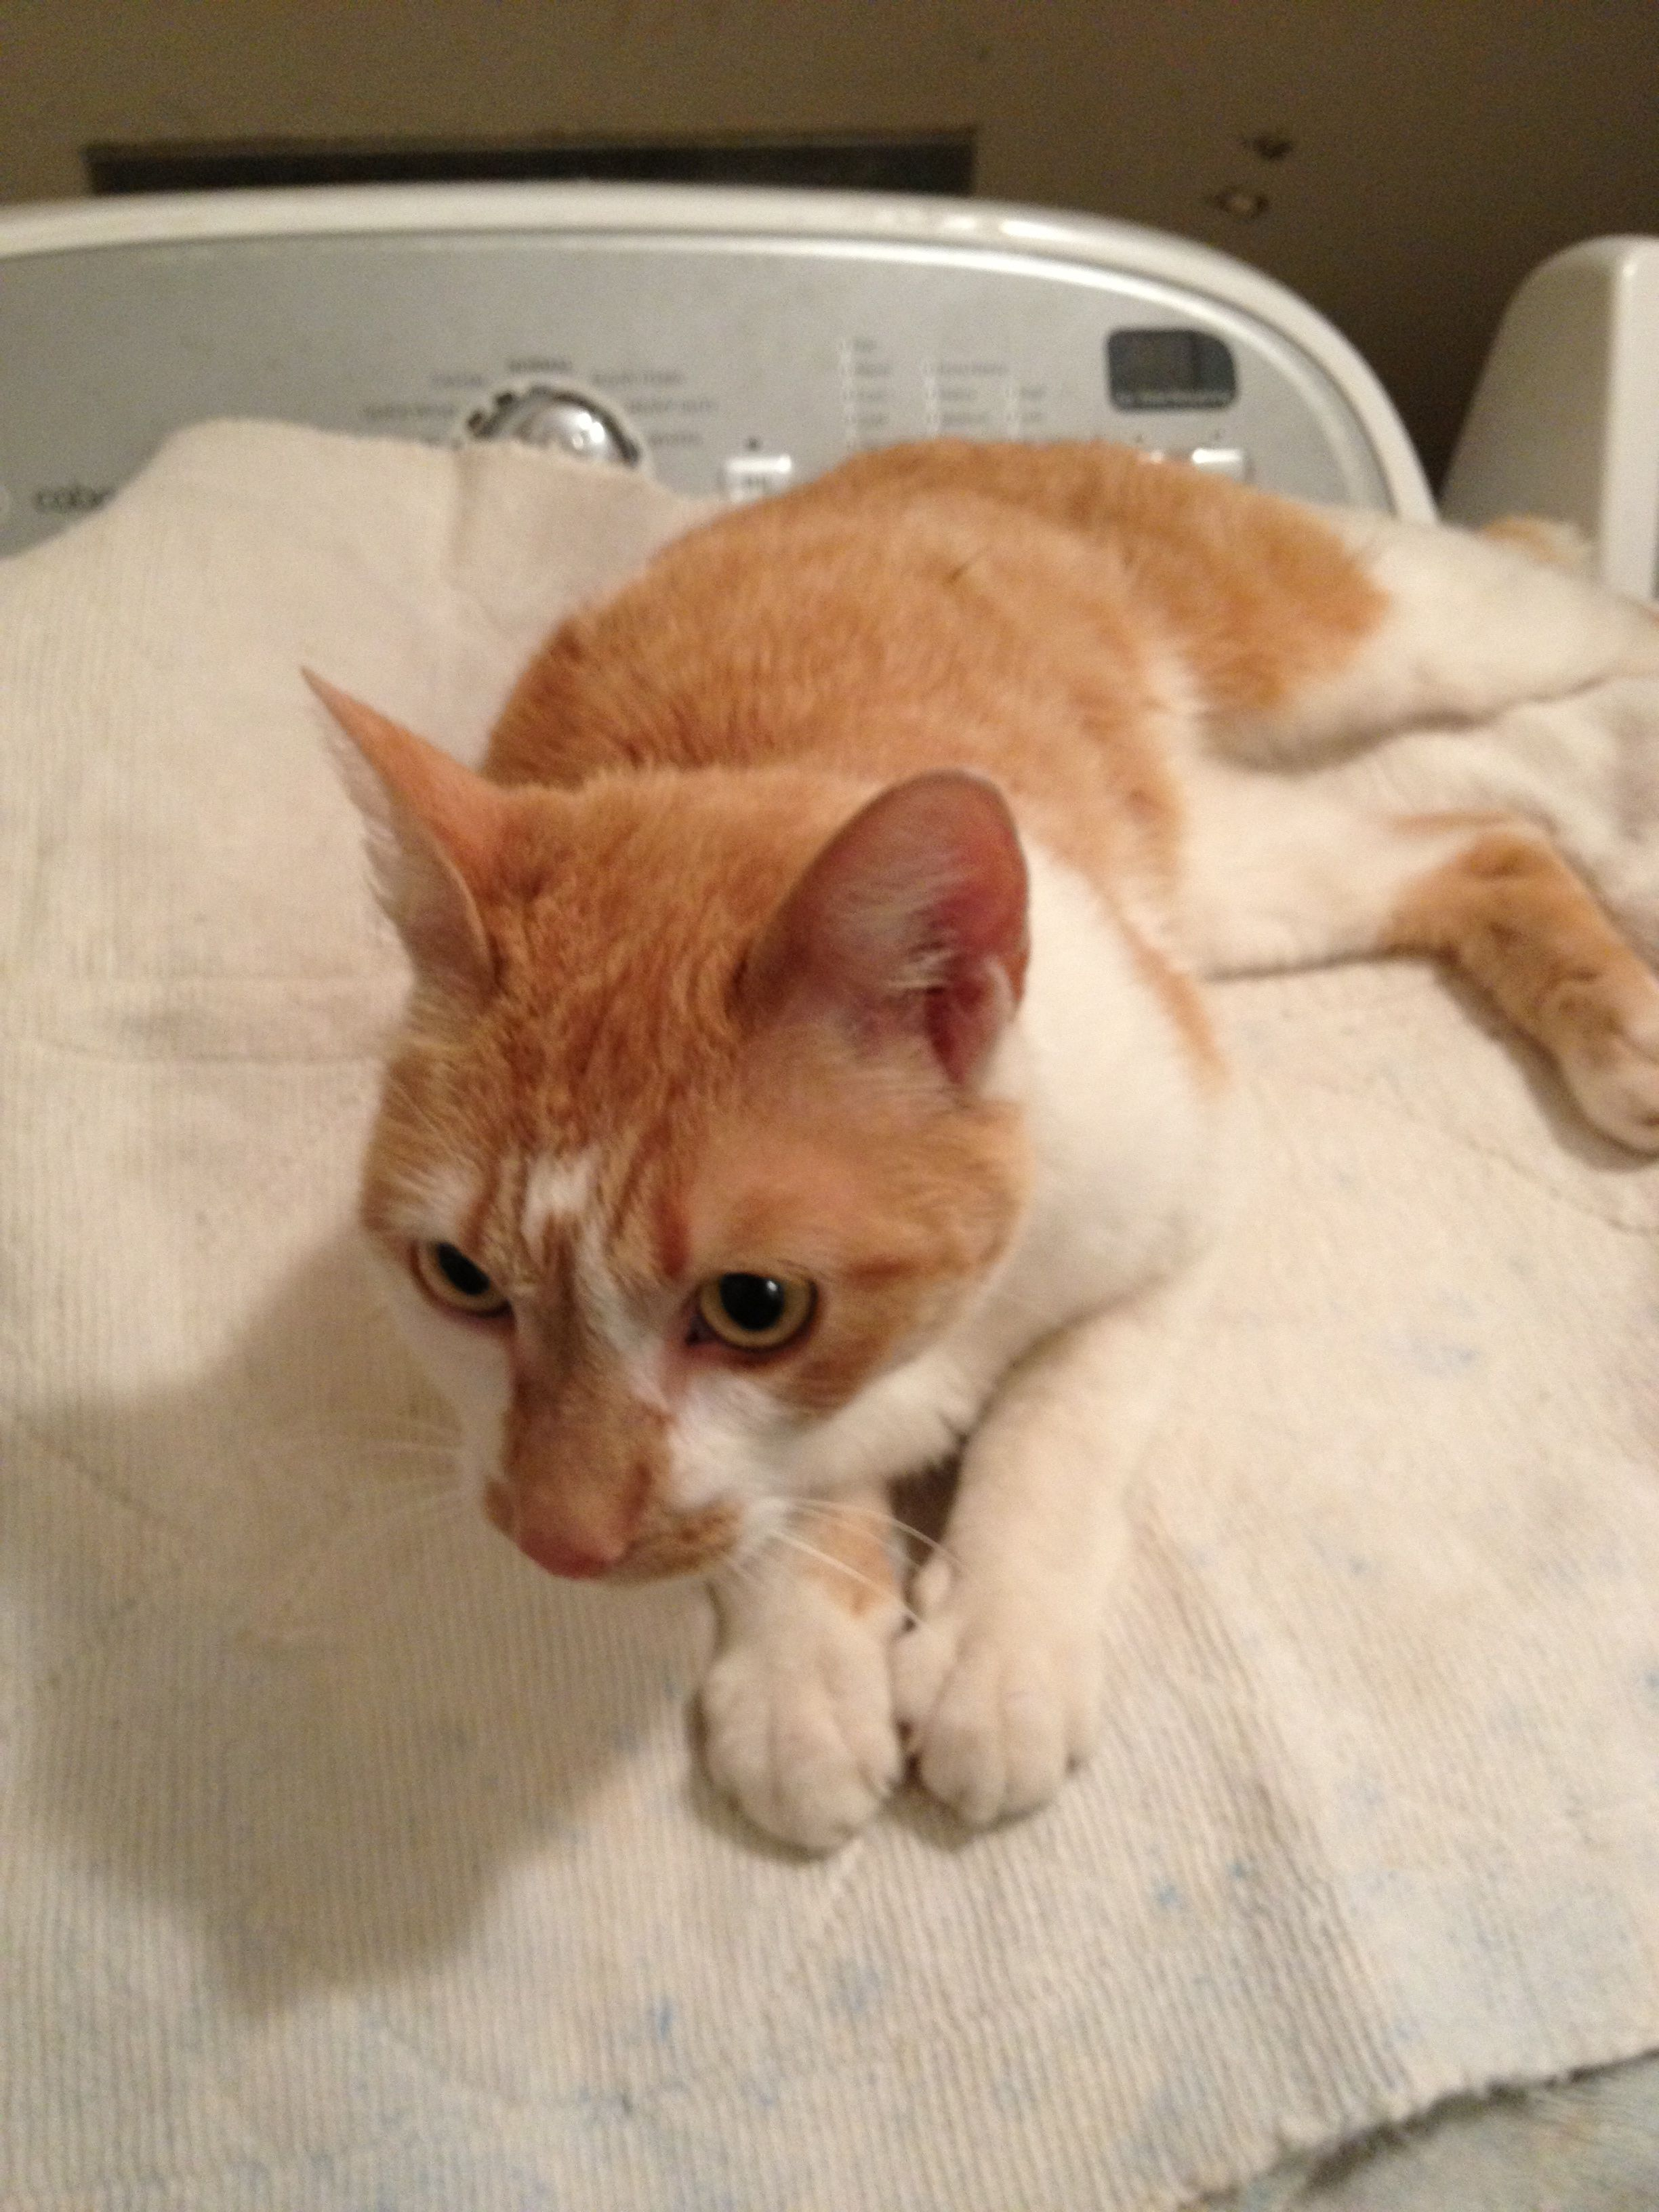 Found Orange And White Cat We Think That It Is Female But We Are Not Positive Could Be Male Very Skinny Super Friendly A Orange And White Cat White Cat Cats